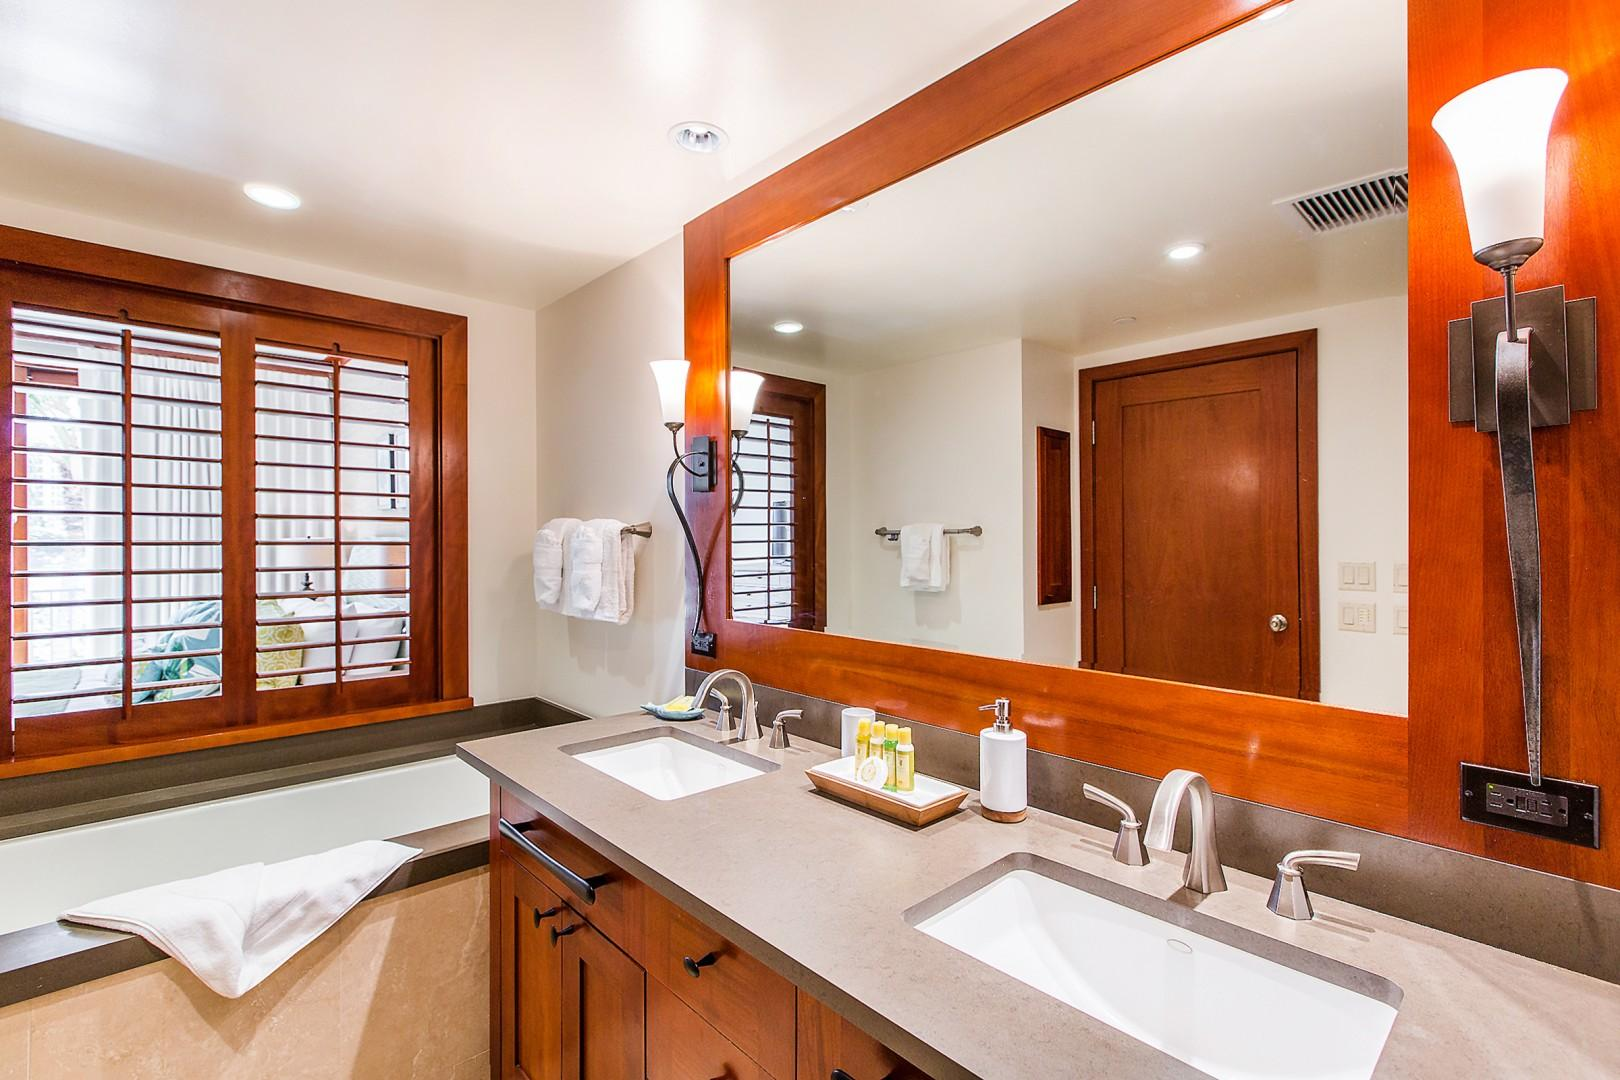 Master bathroom with soaking tub and separate shower